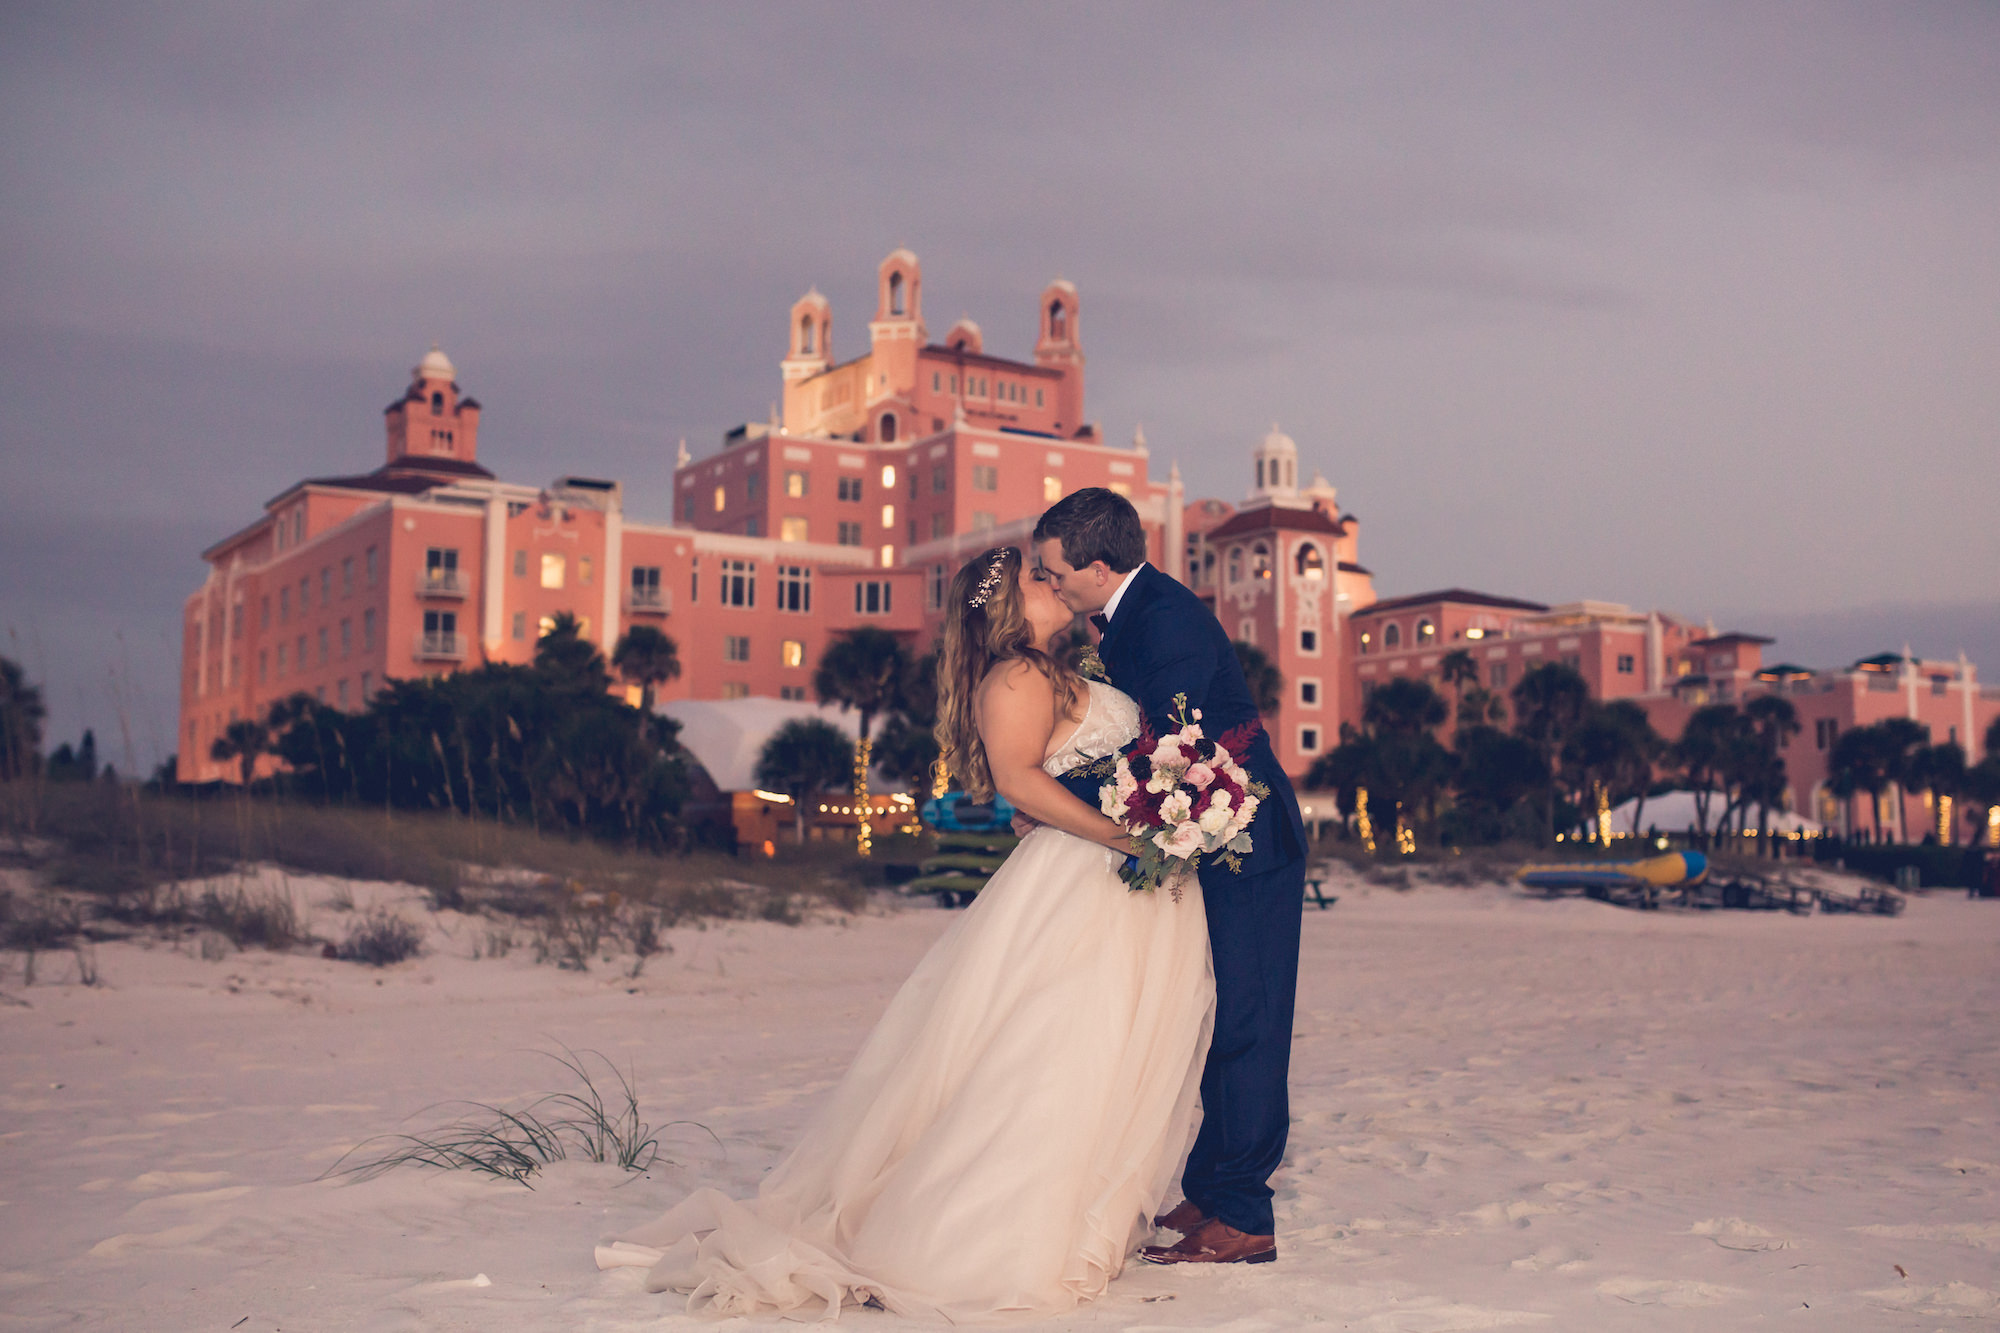 Romantic Sunset Beach Bride and Groom Wedding Portrait at Historic St. Pete Pink Palace Hotel Wedding Venue The Don CeSar | Wedding Photographer Luxe Light Images